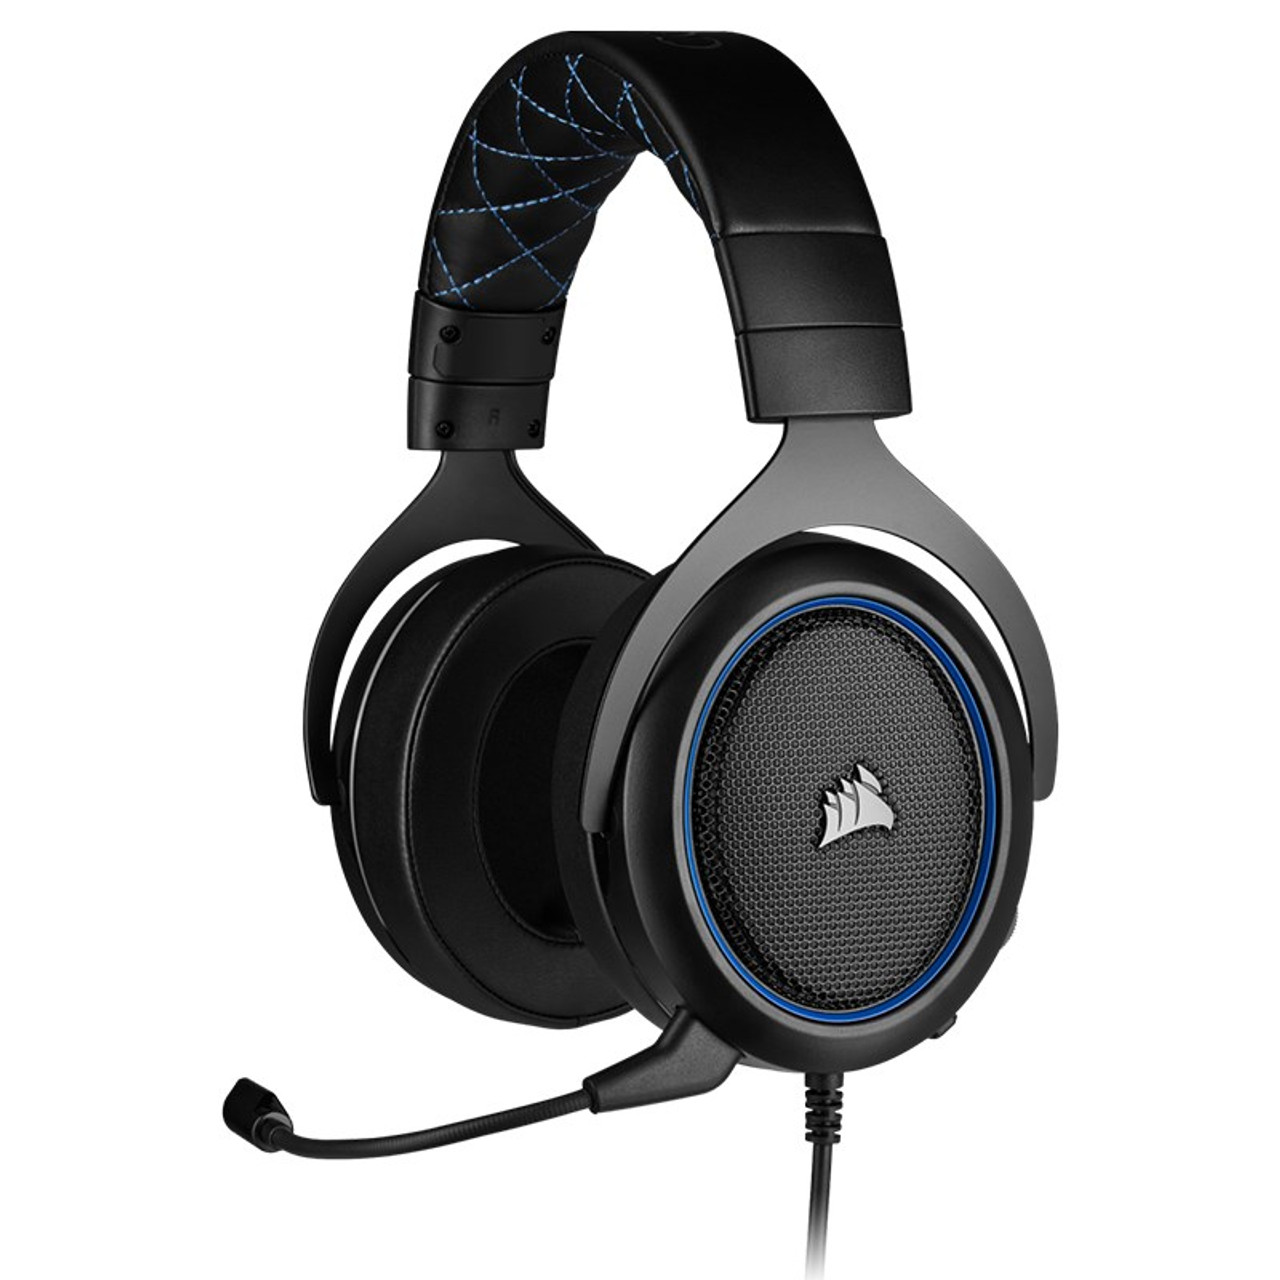 Image for Corsair HS50 Pro Stereo Gaming Headset - Blue CX Computer Superstore